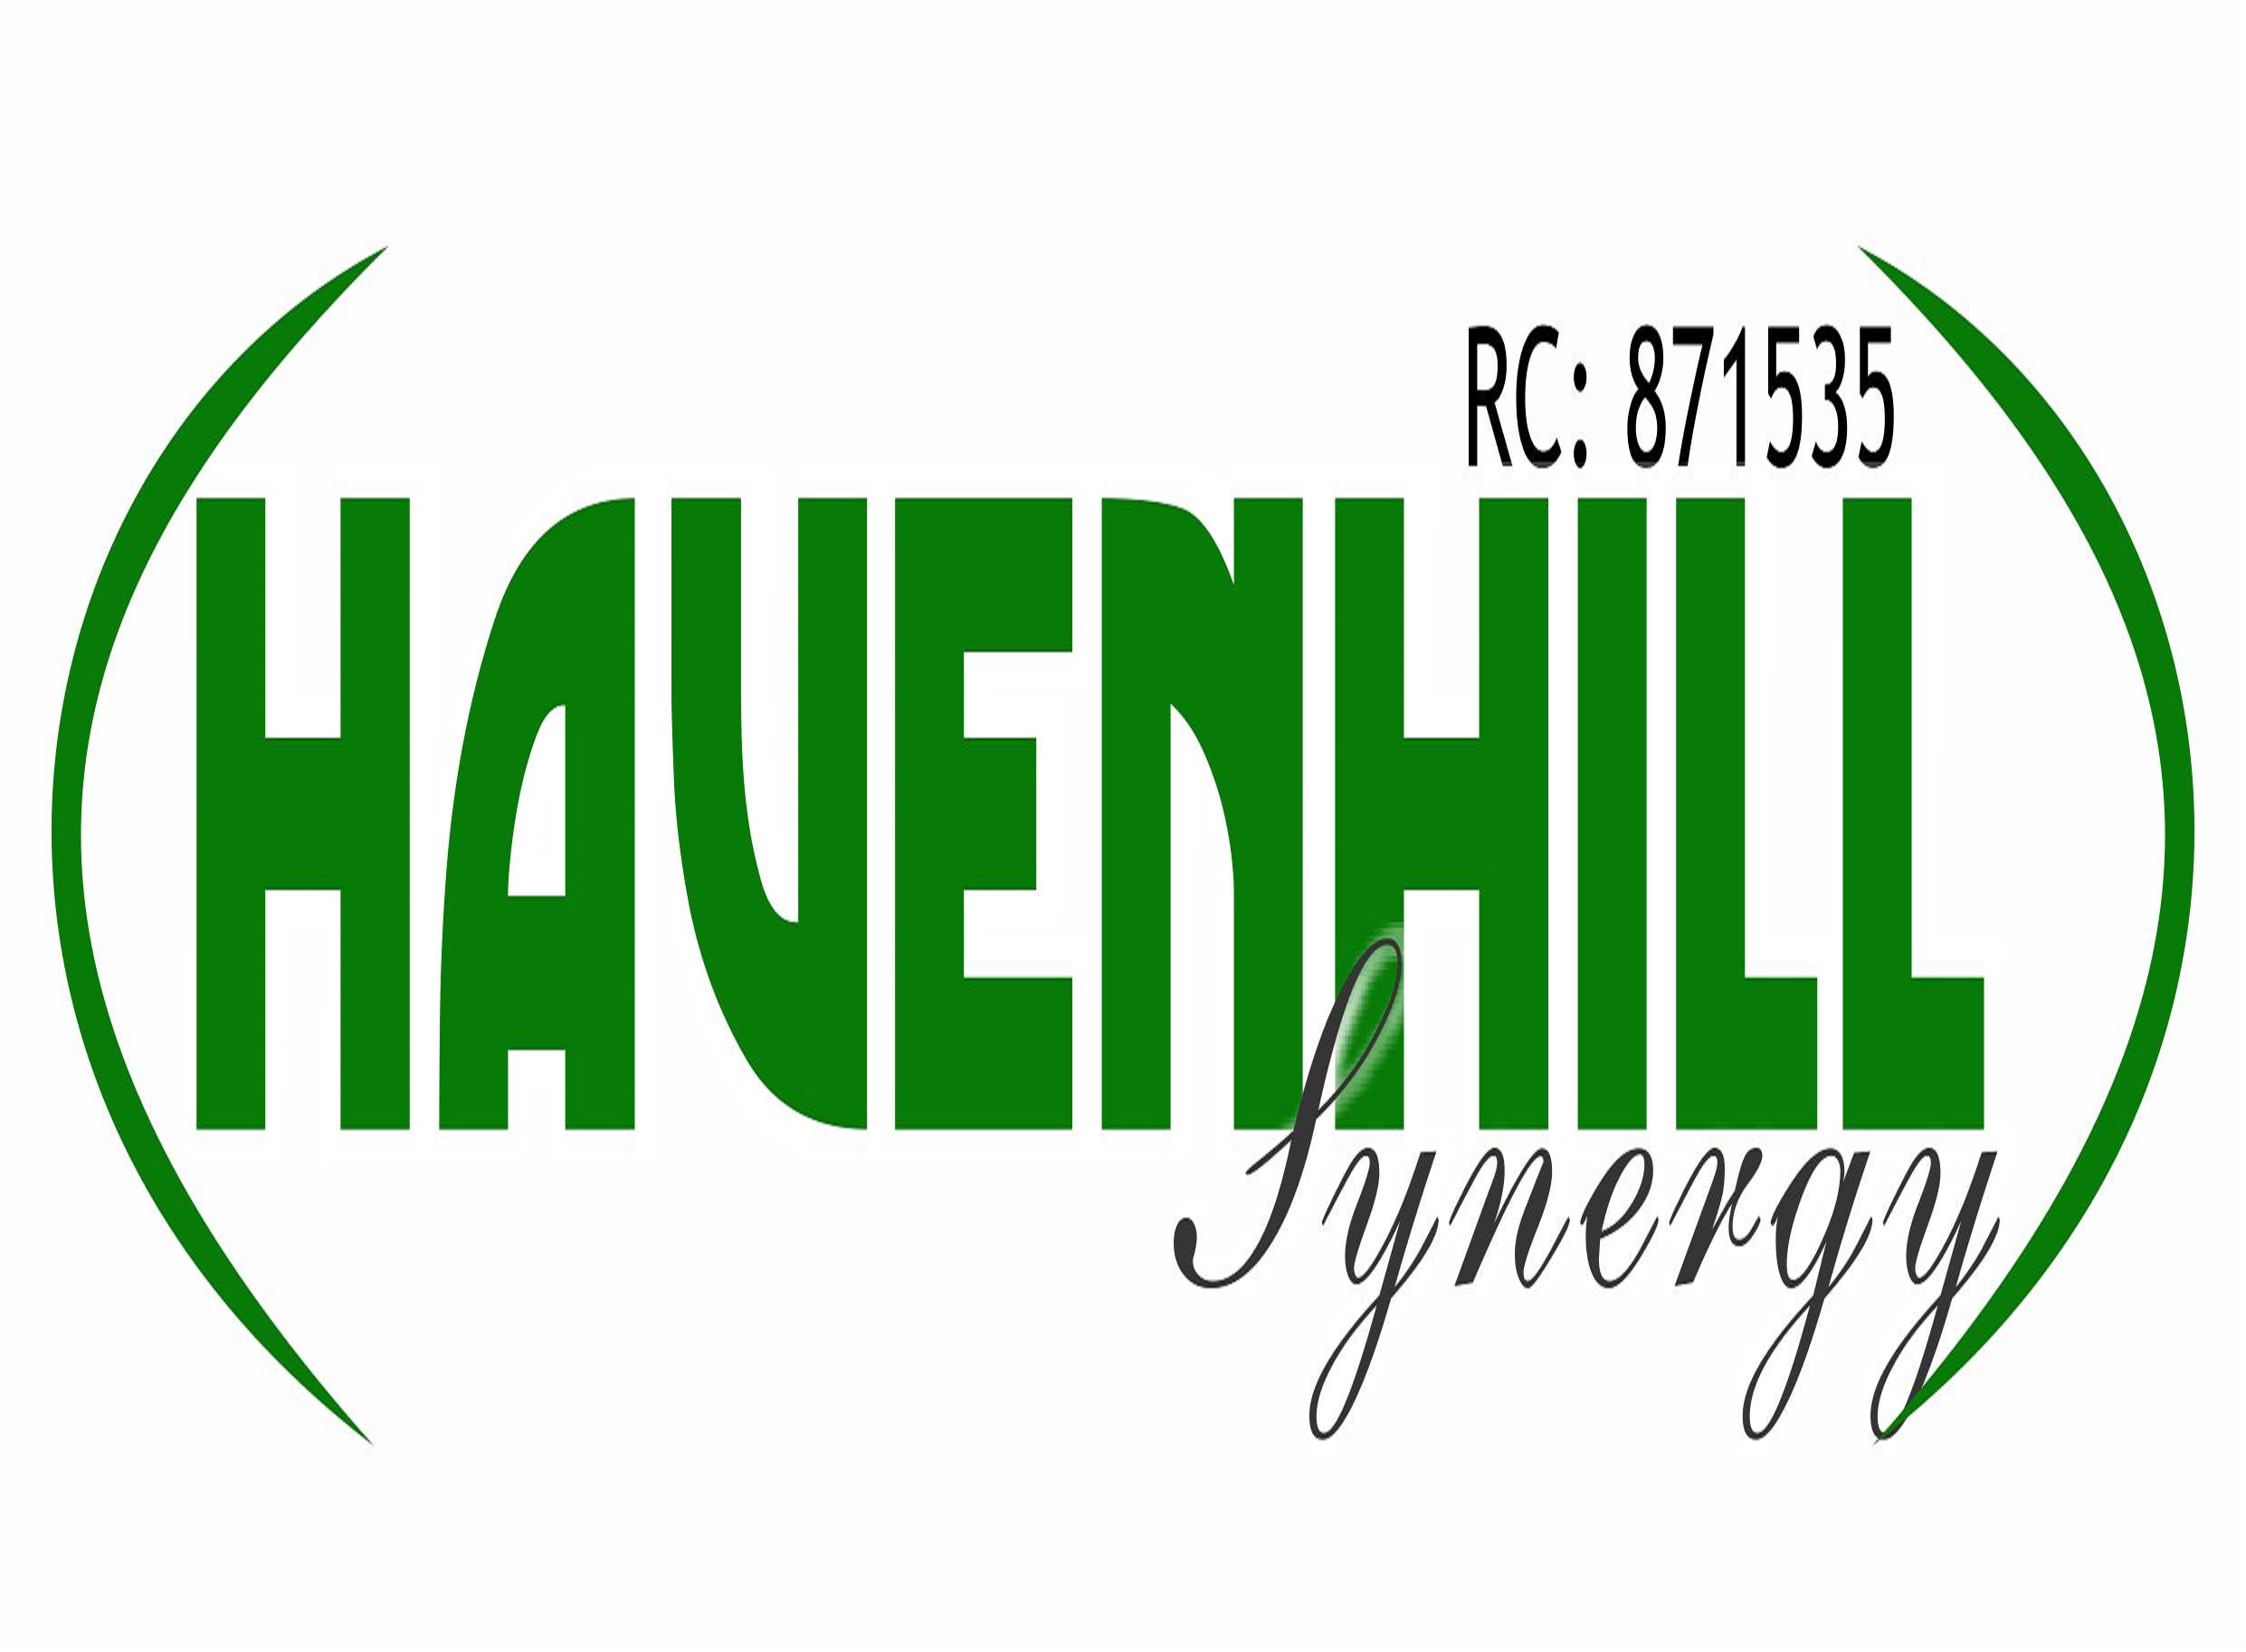 Havenhill Synergy Limited